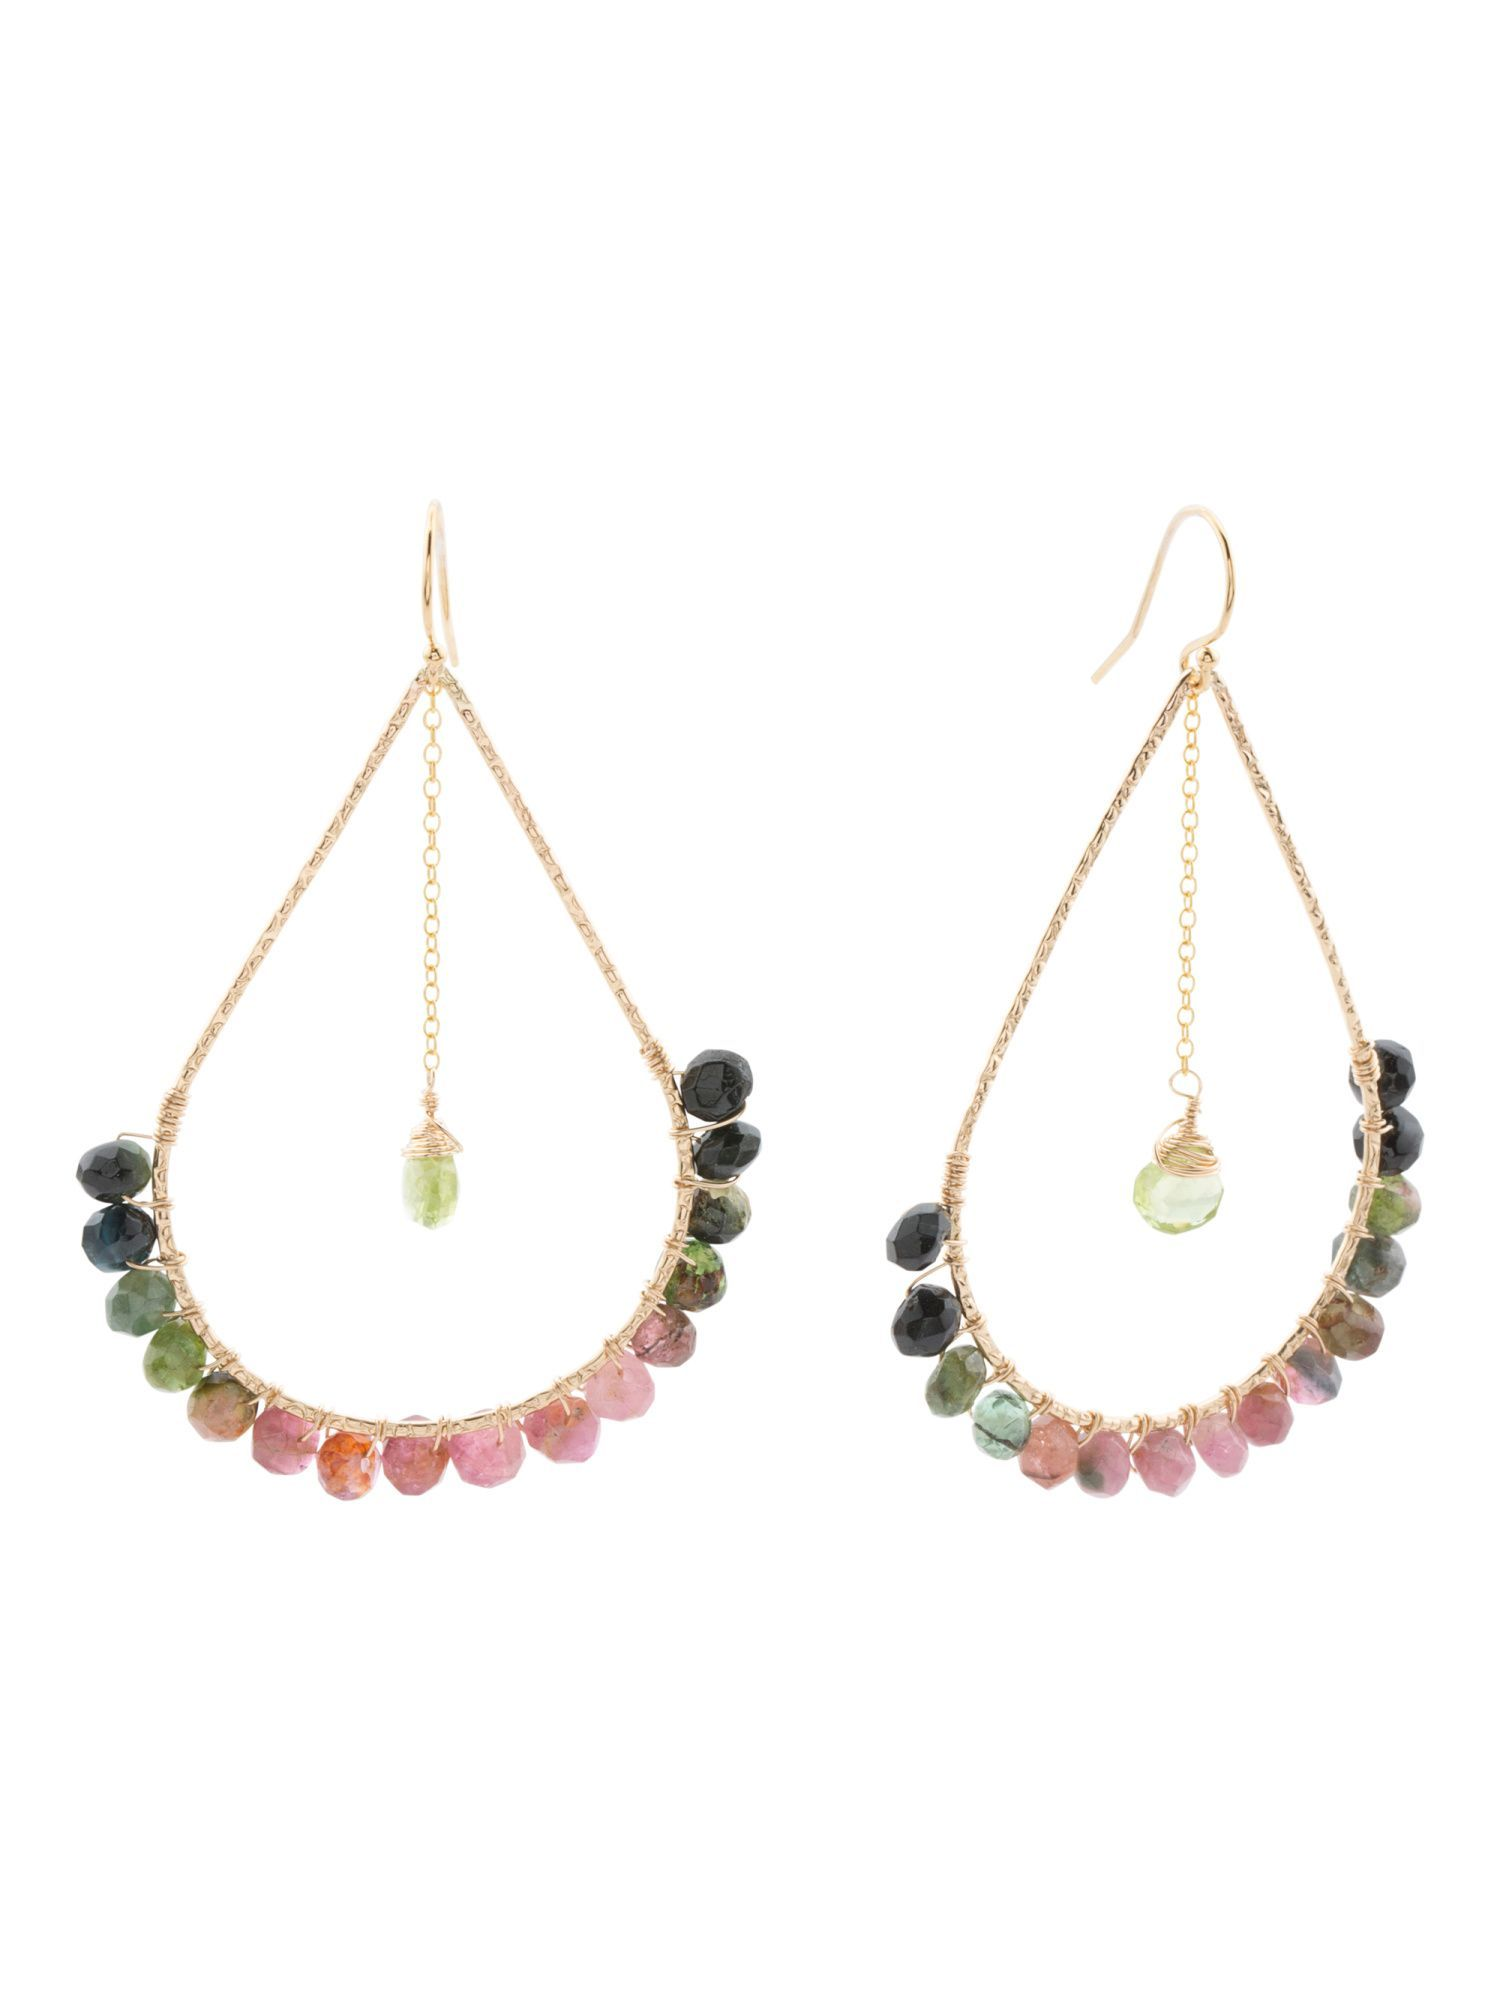 Made In Usa 14k Gold Filled Peridot And Tourmaline Earrings